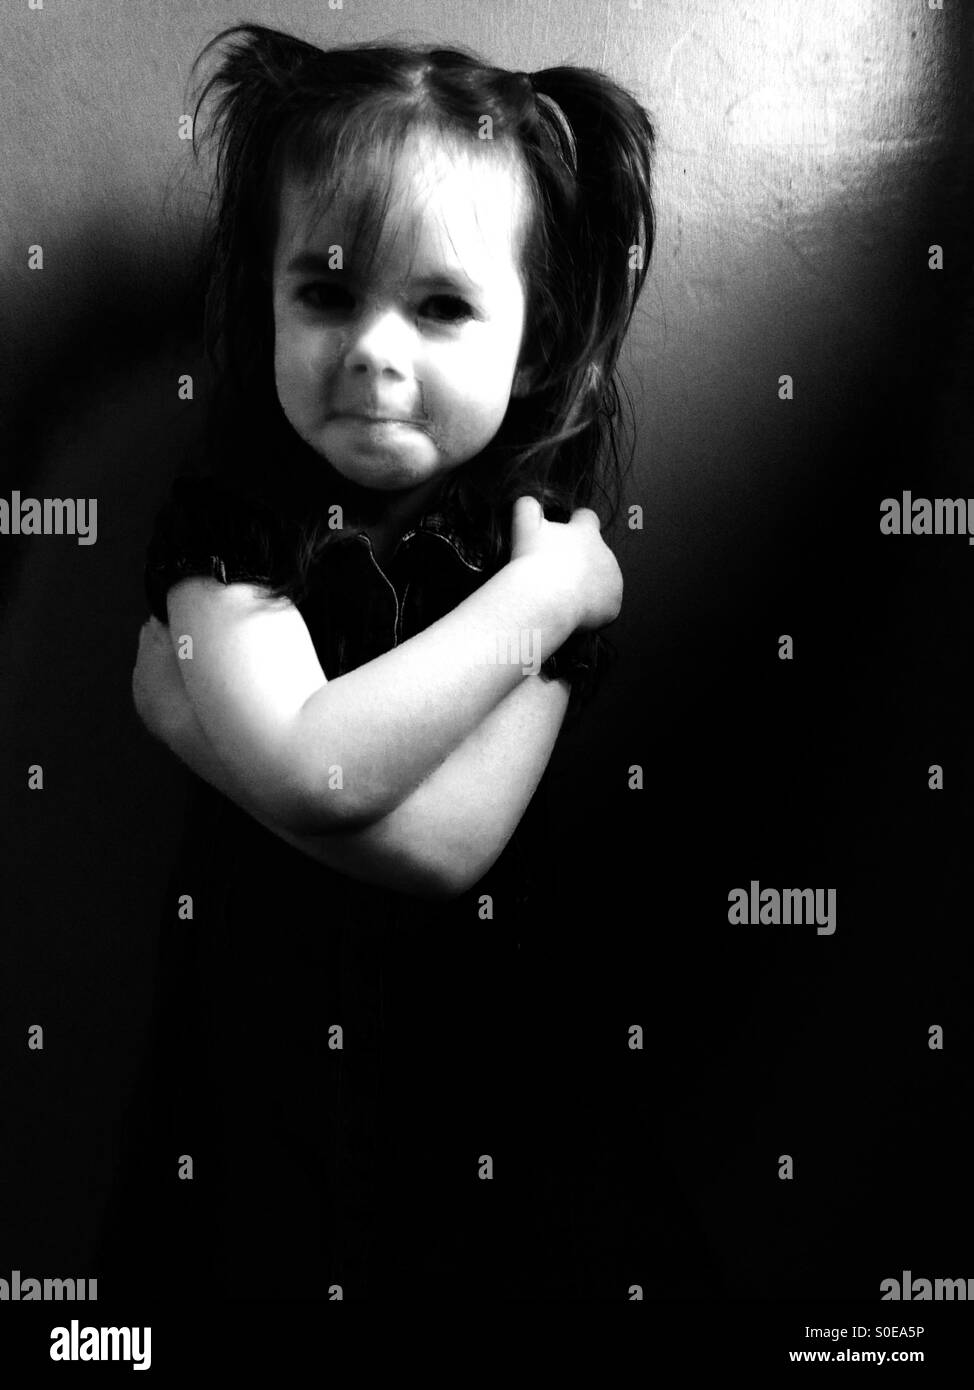 3-year old girl with pigtails in her hair - Stock Image